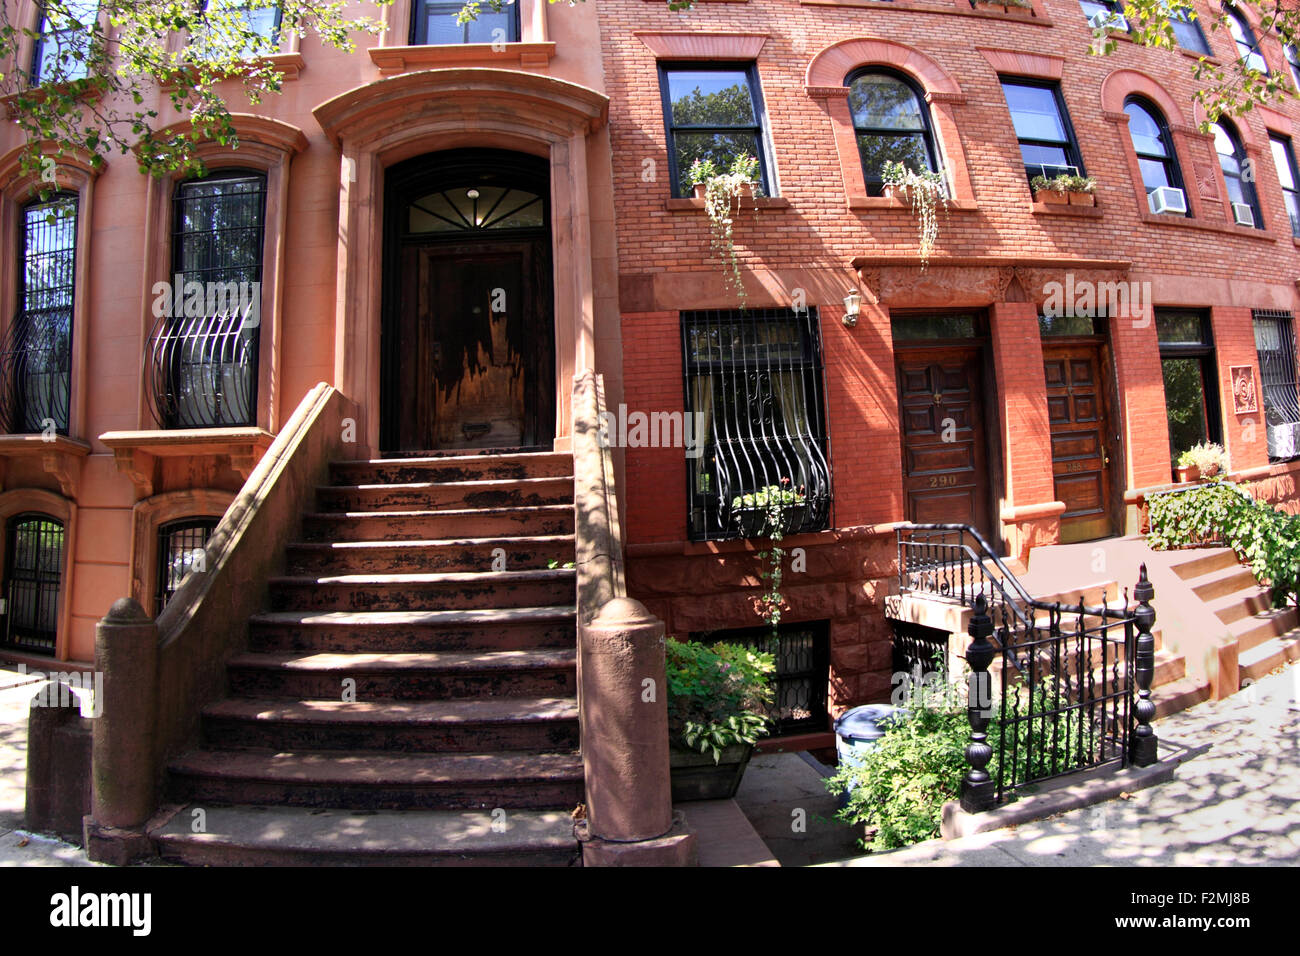 Brownstone apartments Brooklyn New York City Stock Photo, Royalty ...